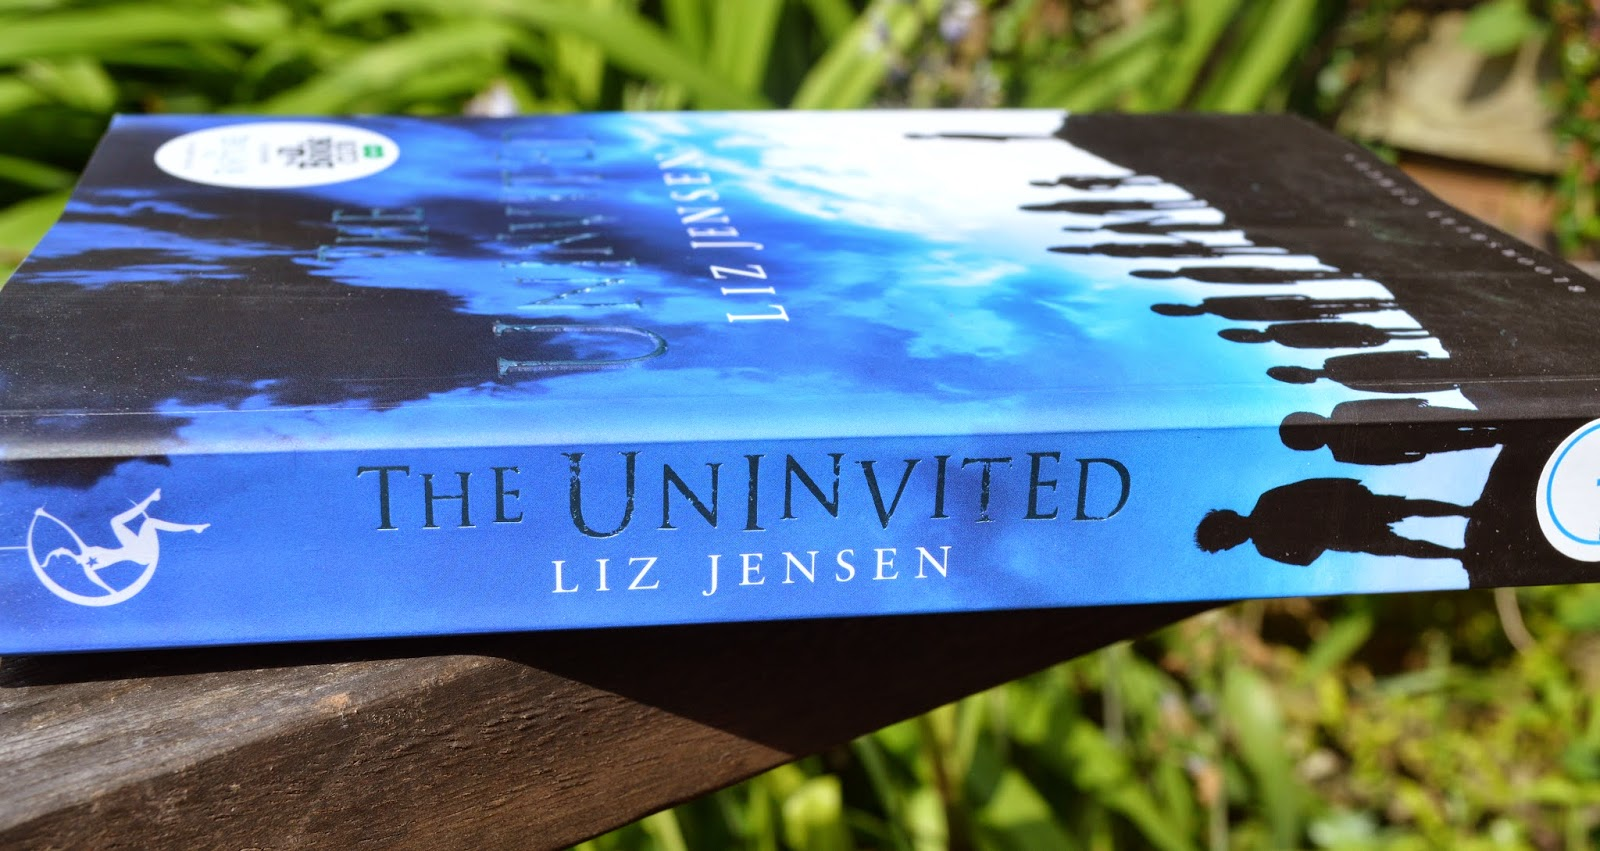 Liz Jensen, The Uninvited, asperger's syndrome, review, book, paperback, photograph, literature,